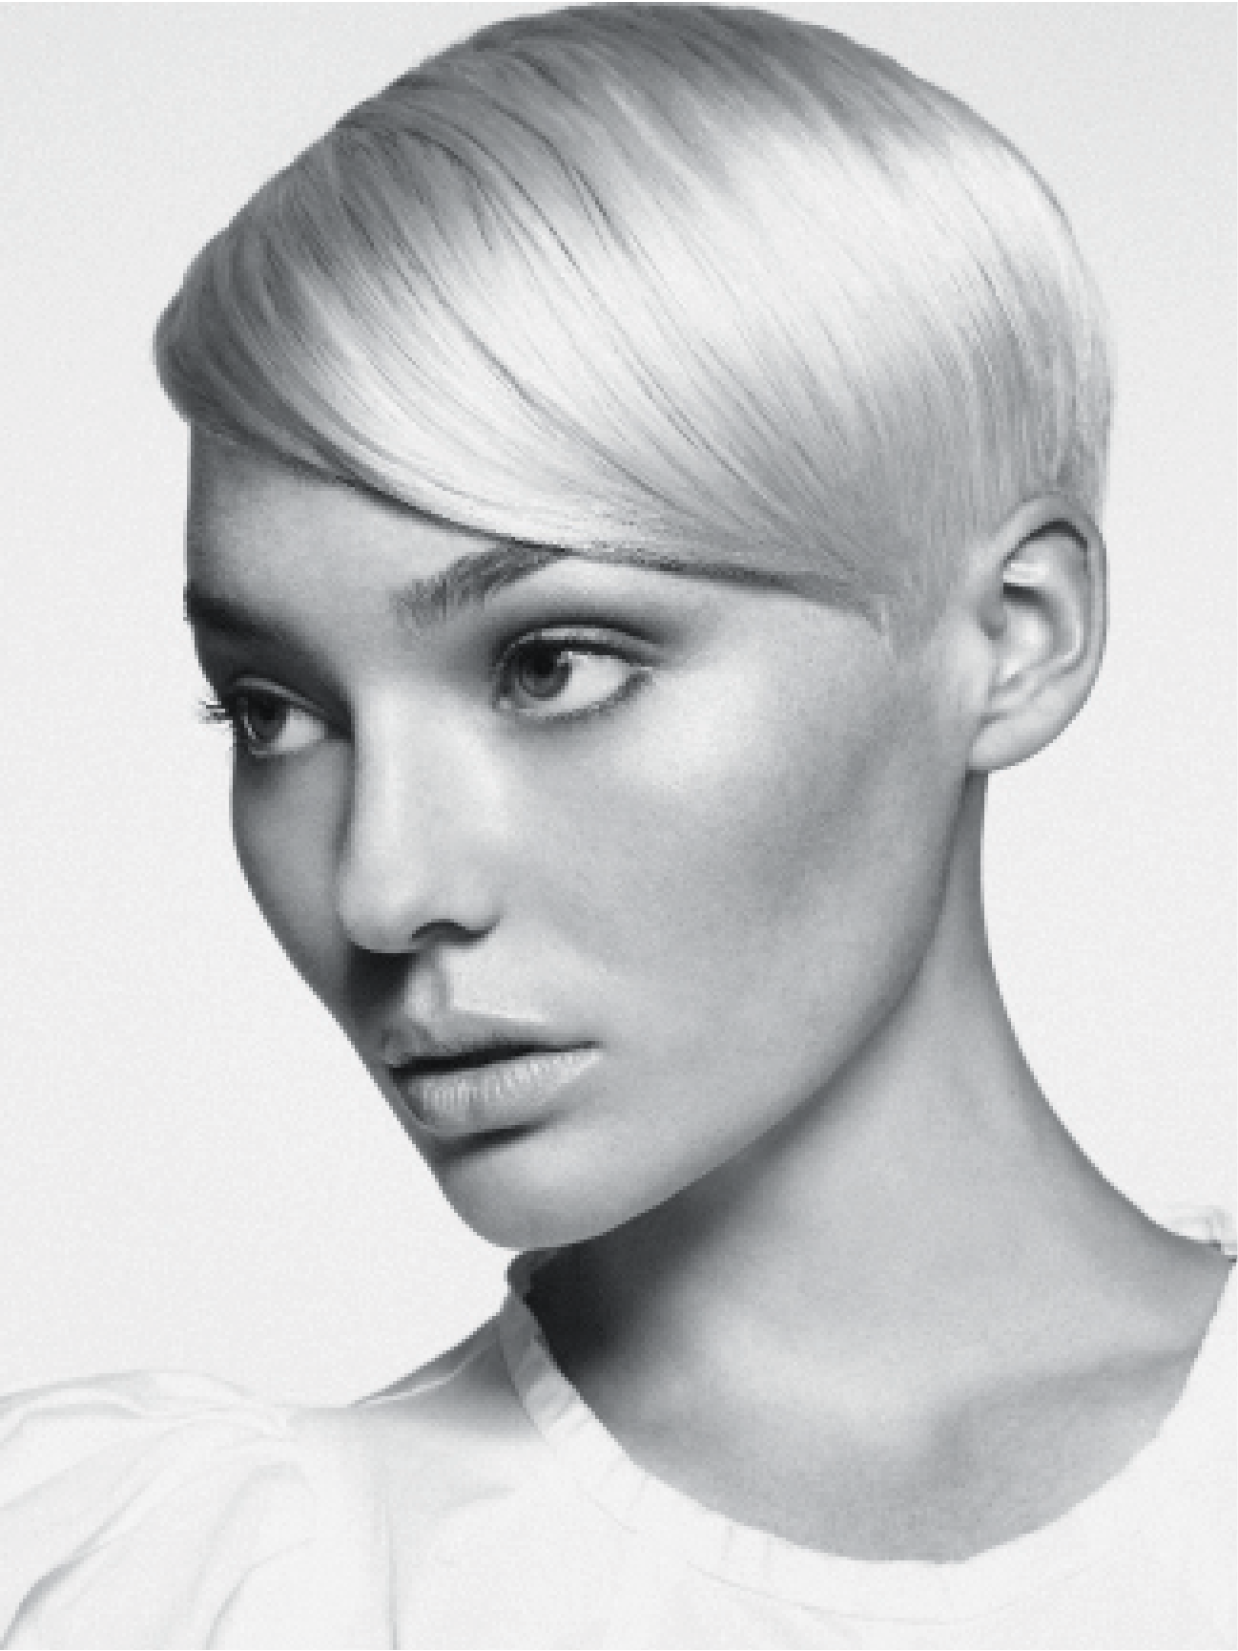 Turnbull used Matrix haircolor and developers for this Icelandic blonde. Then he relied on slide- and razor-cutting techniques for the bottom portions of the hair to achieve the desired length. He used Matrix products and blow-dried hair into place to finish.